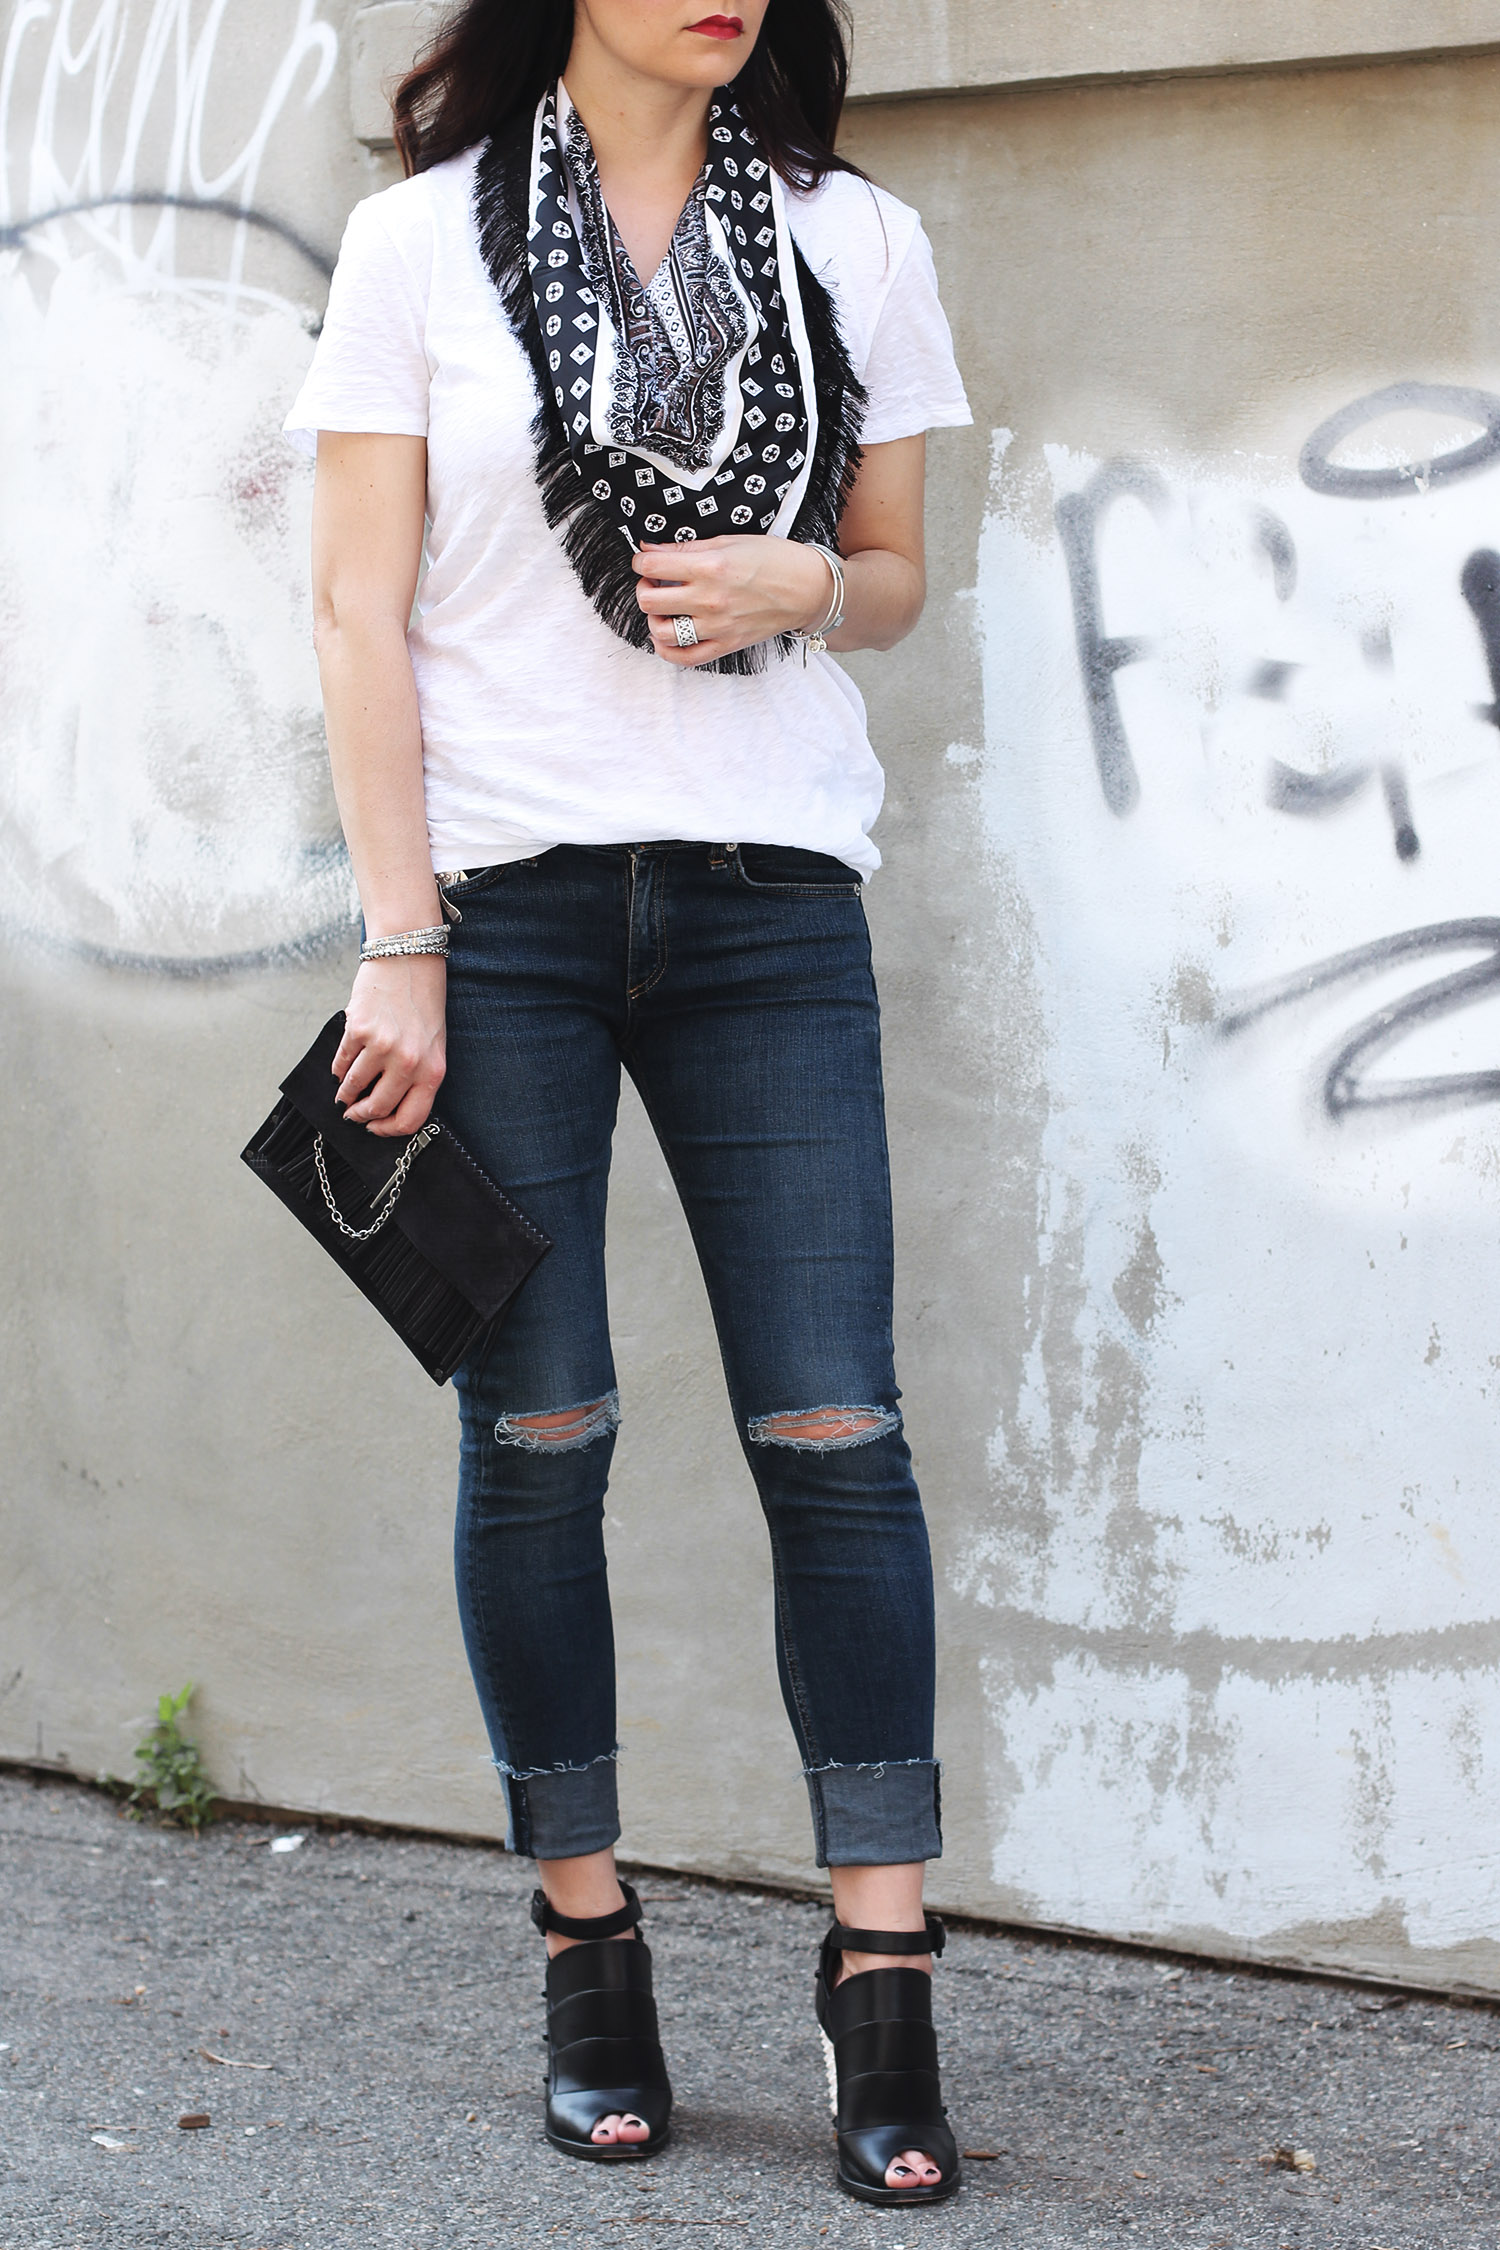 Layered Fringe Neck Scarf, White T-Shirt Style